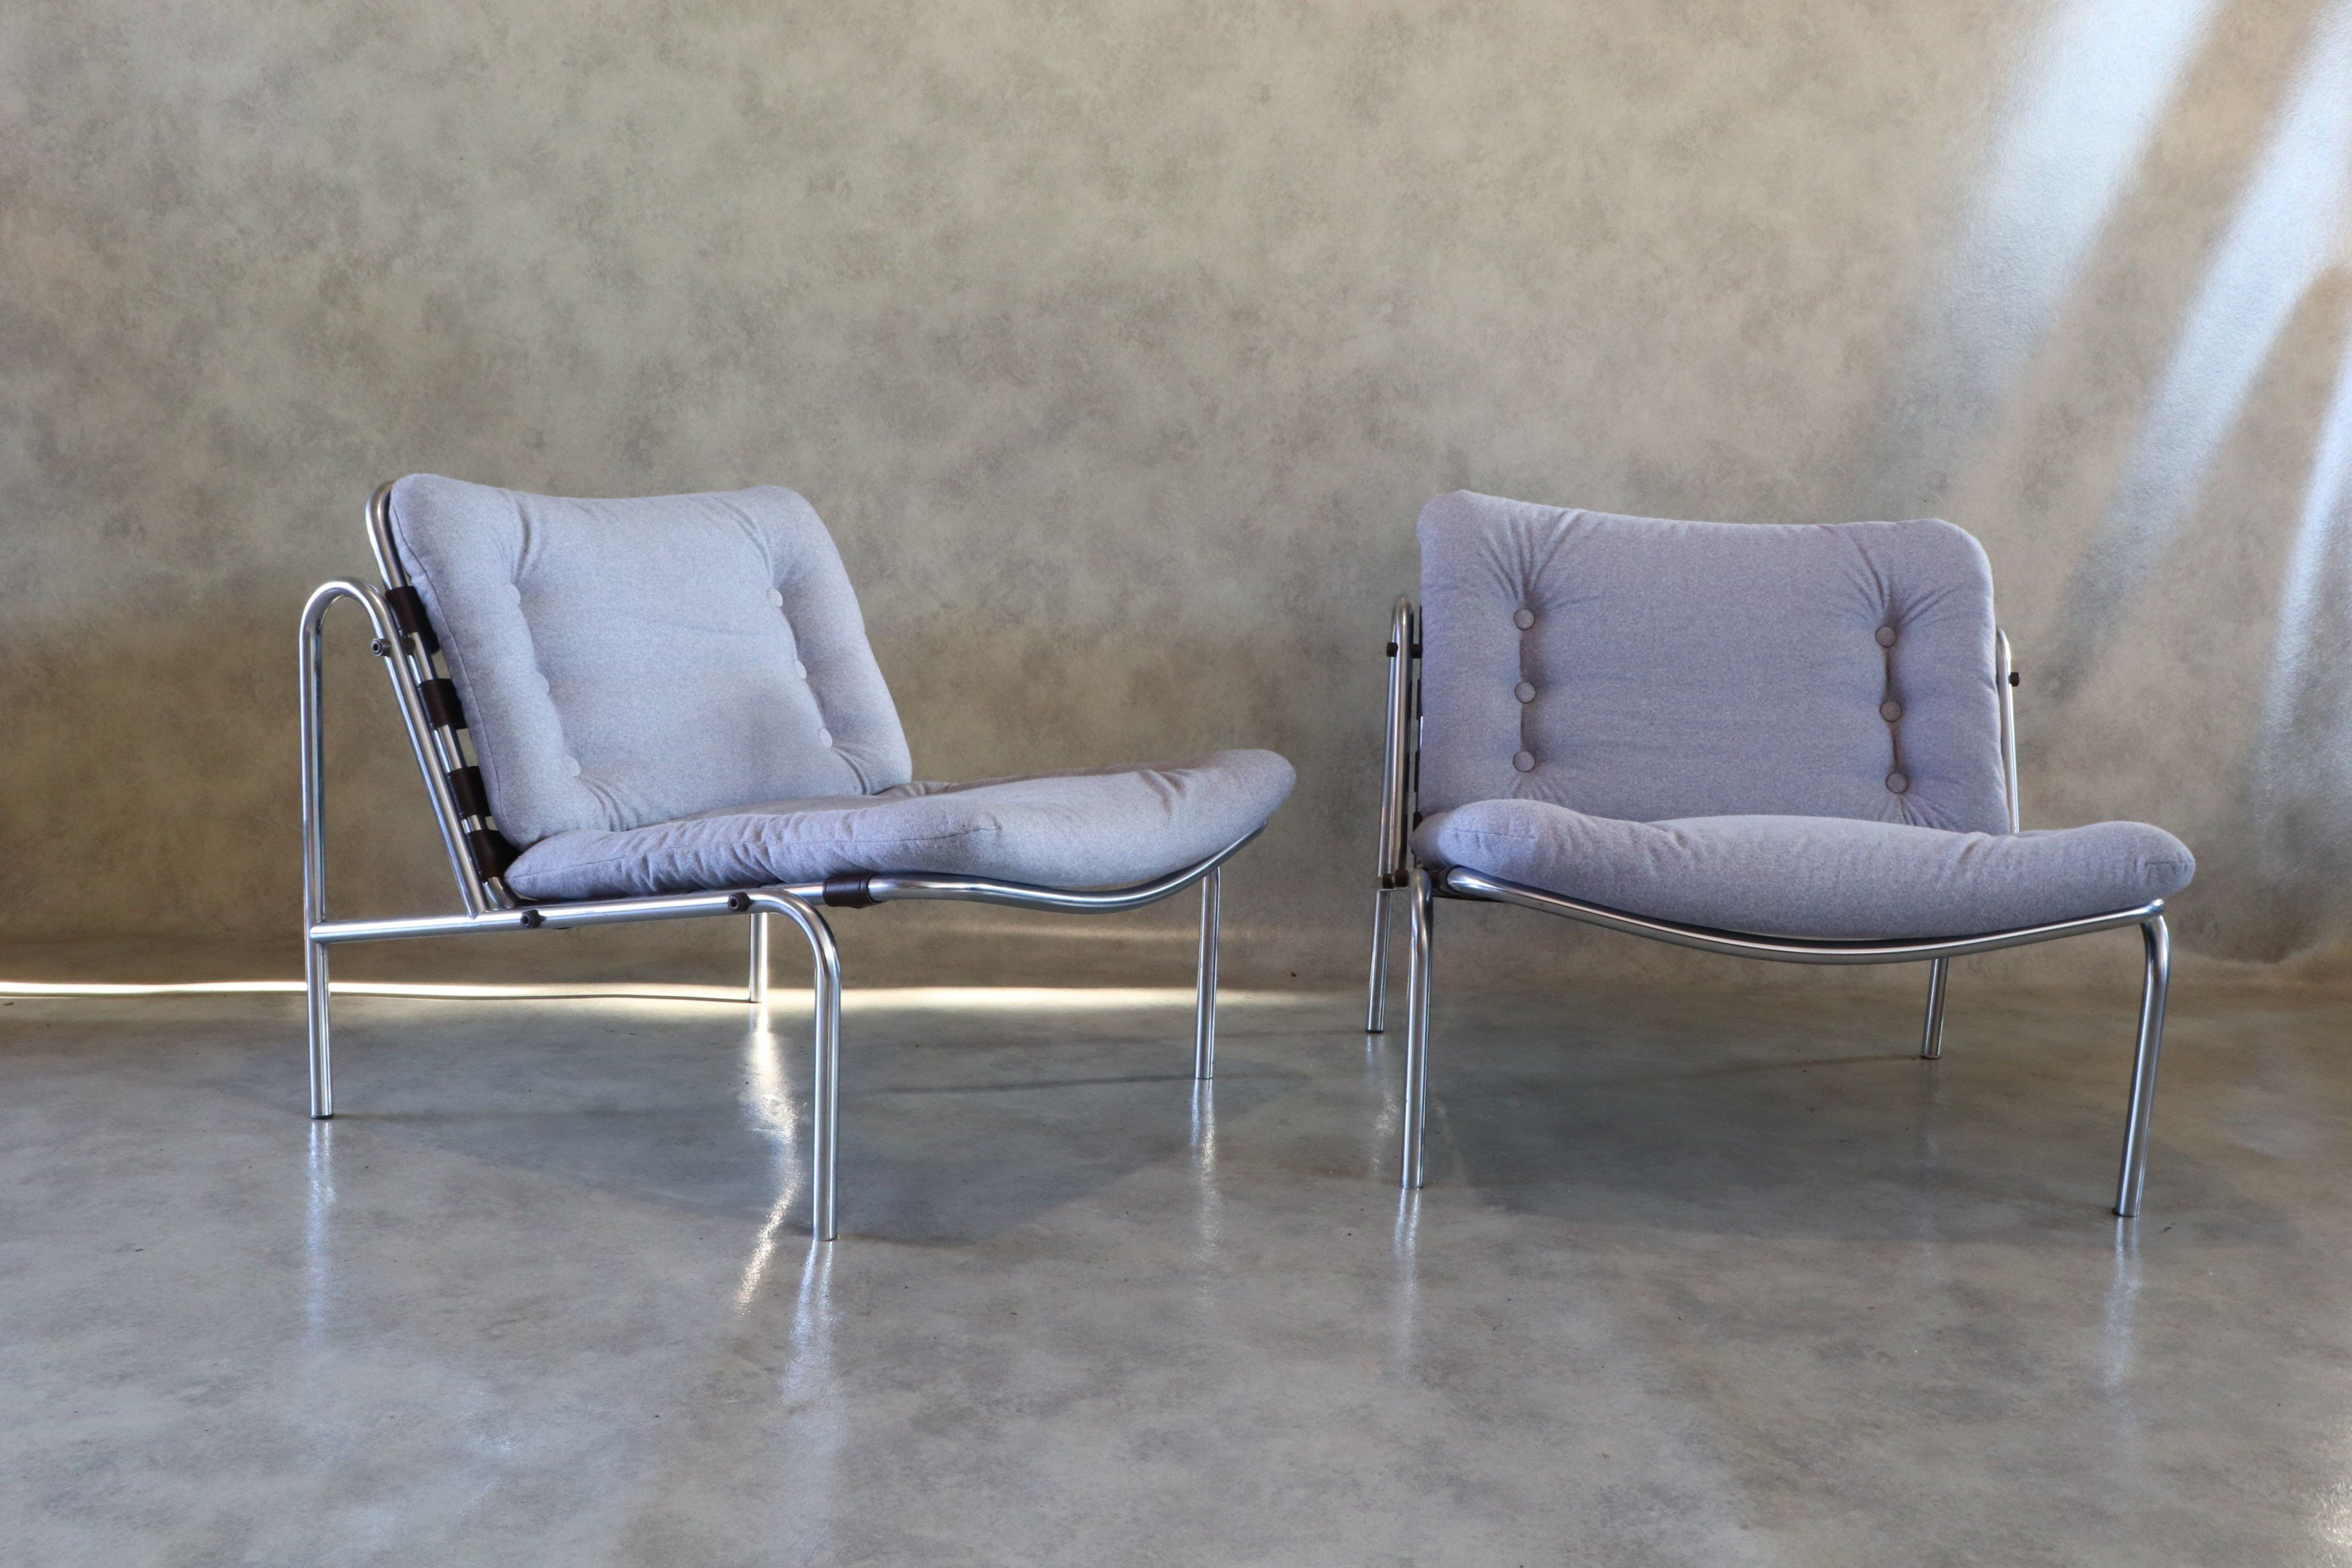 Pair of  Kyoto Armchairs by M. Visser for t Spectrum, Netherlands, 1960s - 511860 - photo